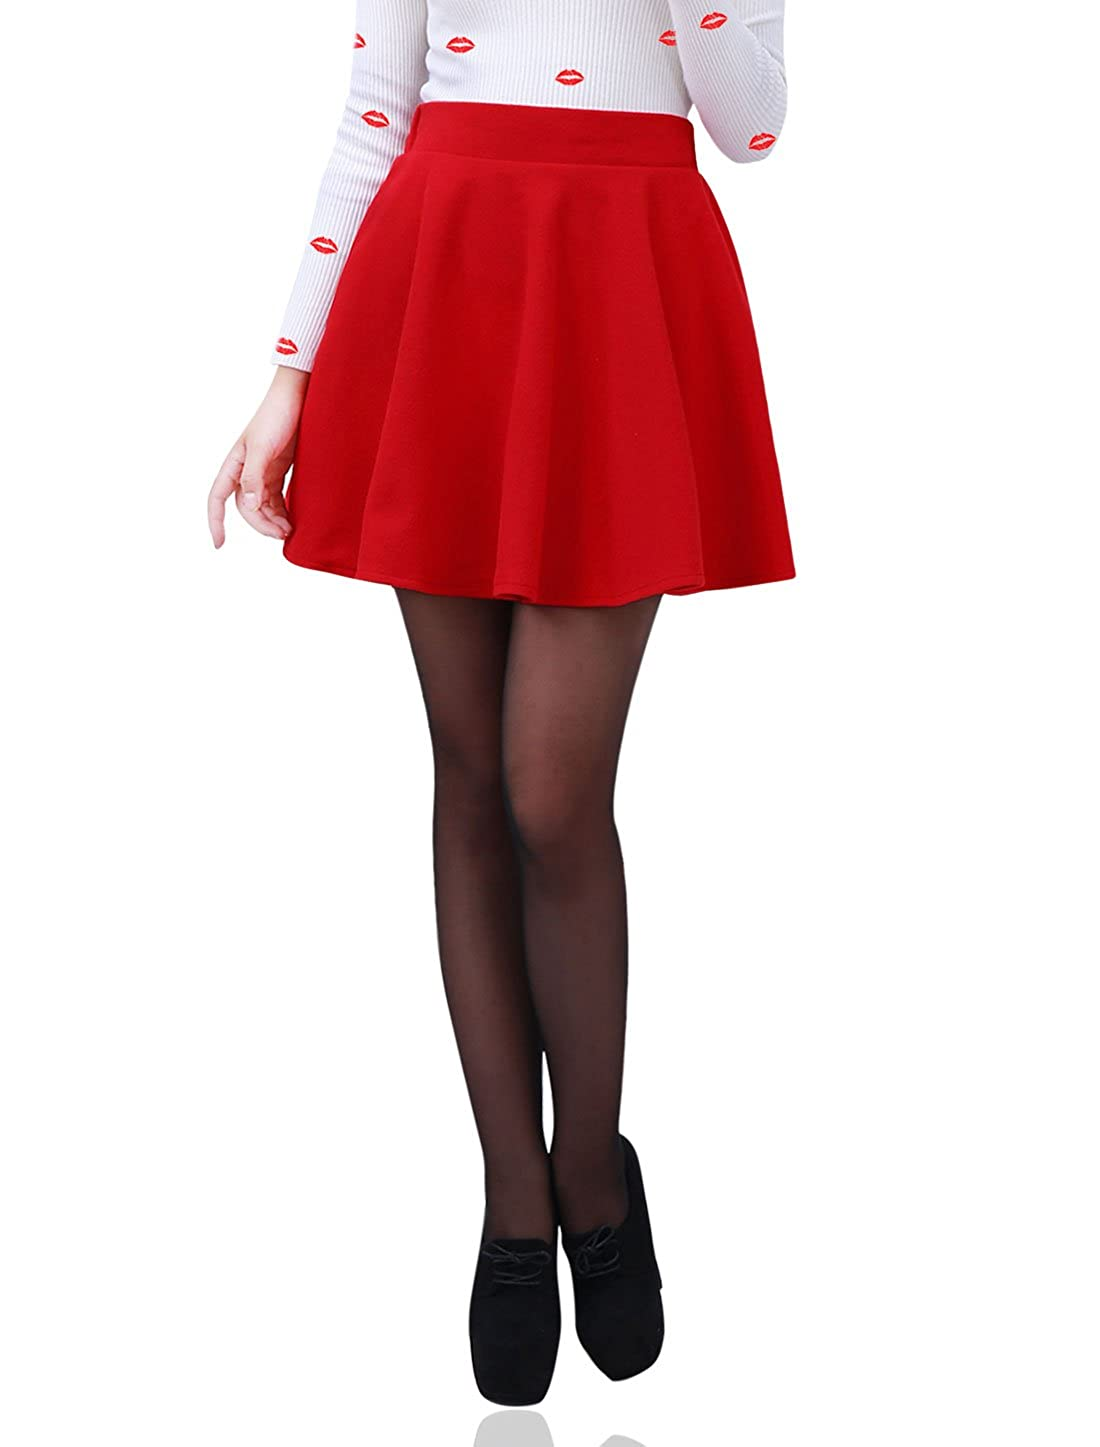 Allegra K Ladies Elastic Waist Ruffled Design Casual Tweed Skater Skirt g12121300ux0048